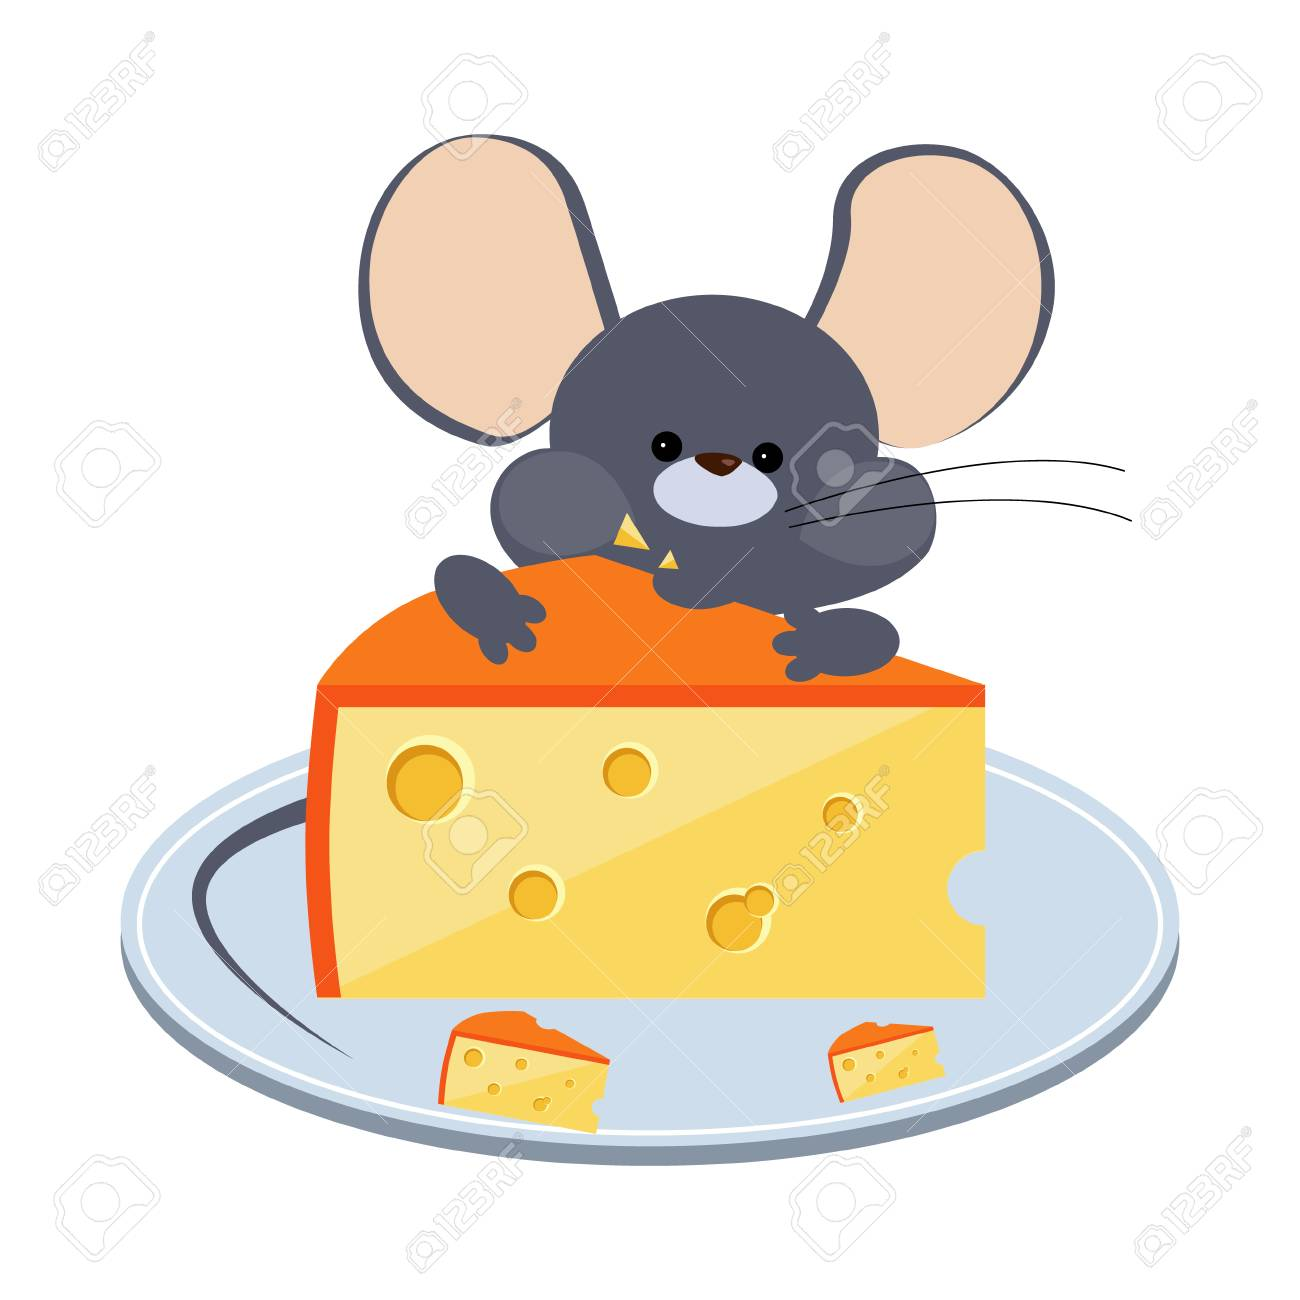 Little Gray Mouse Chewing Cheese on a Plate. Bright Vector Illustration - 110717834